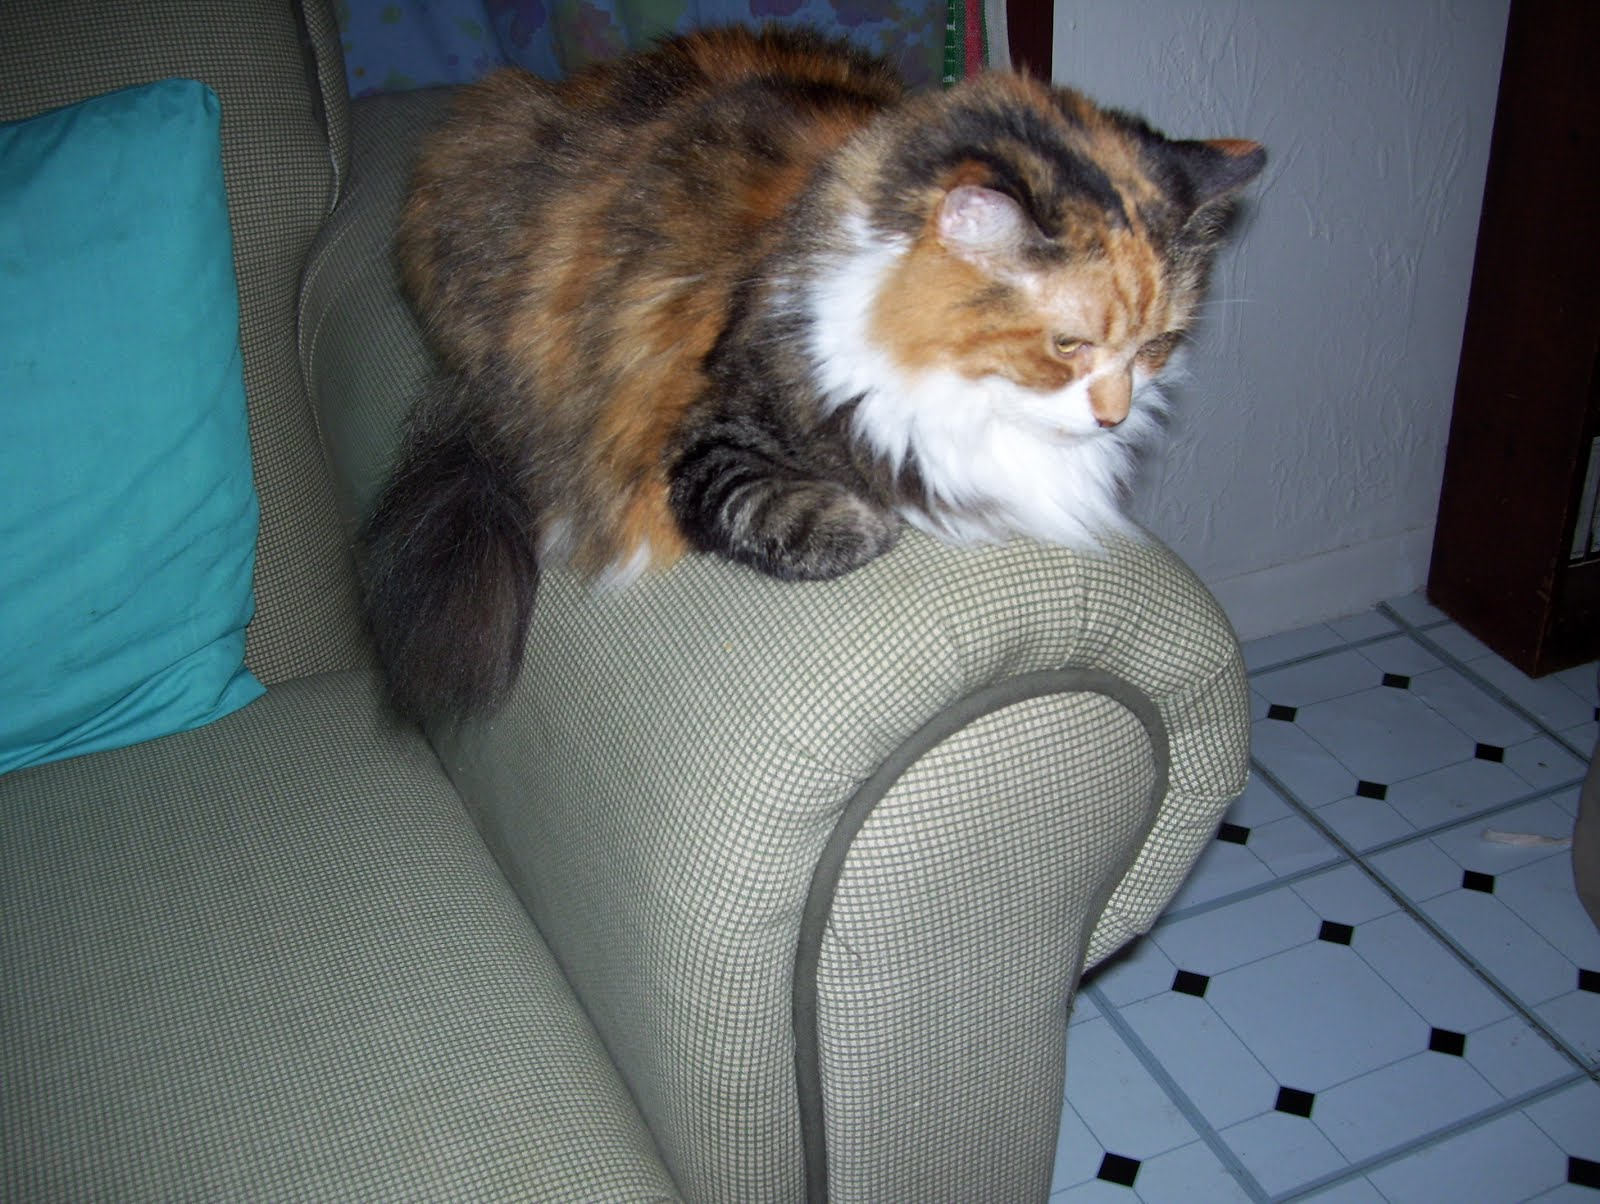 Muffin - photo in 2006